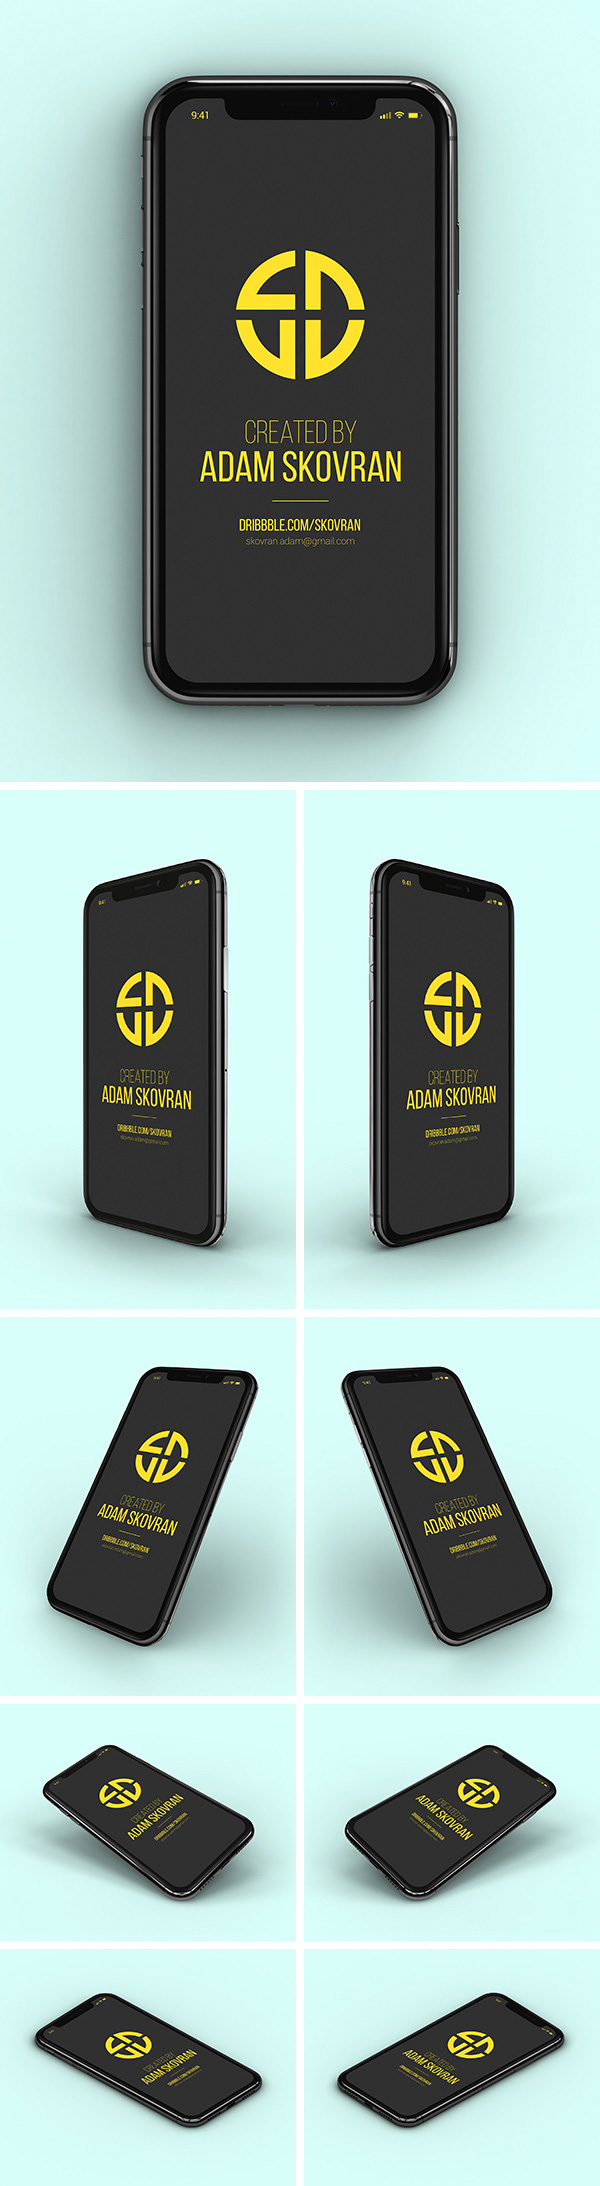 Free iPhone X MockUps – 9 Angles